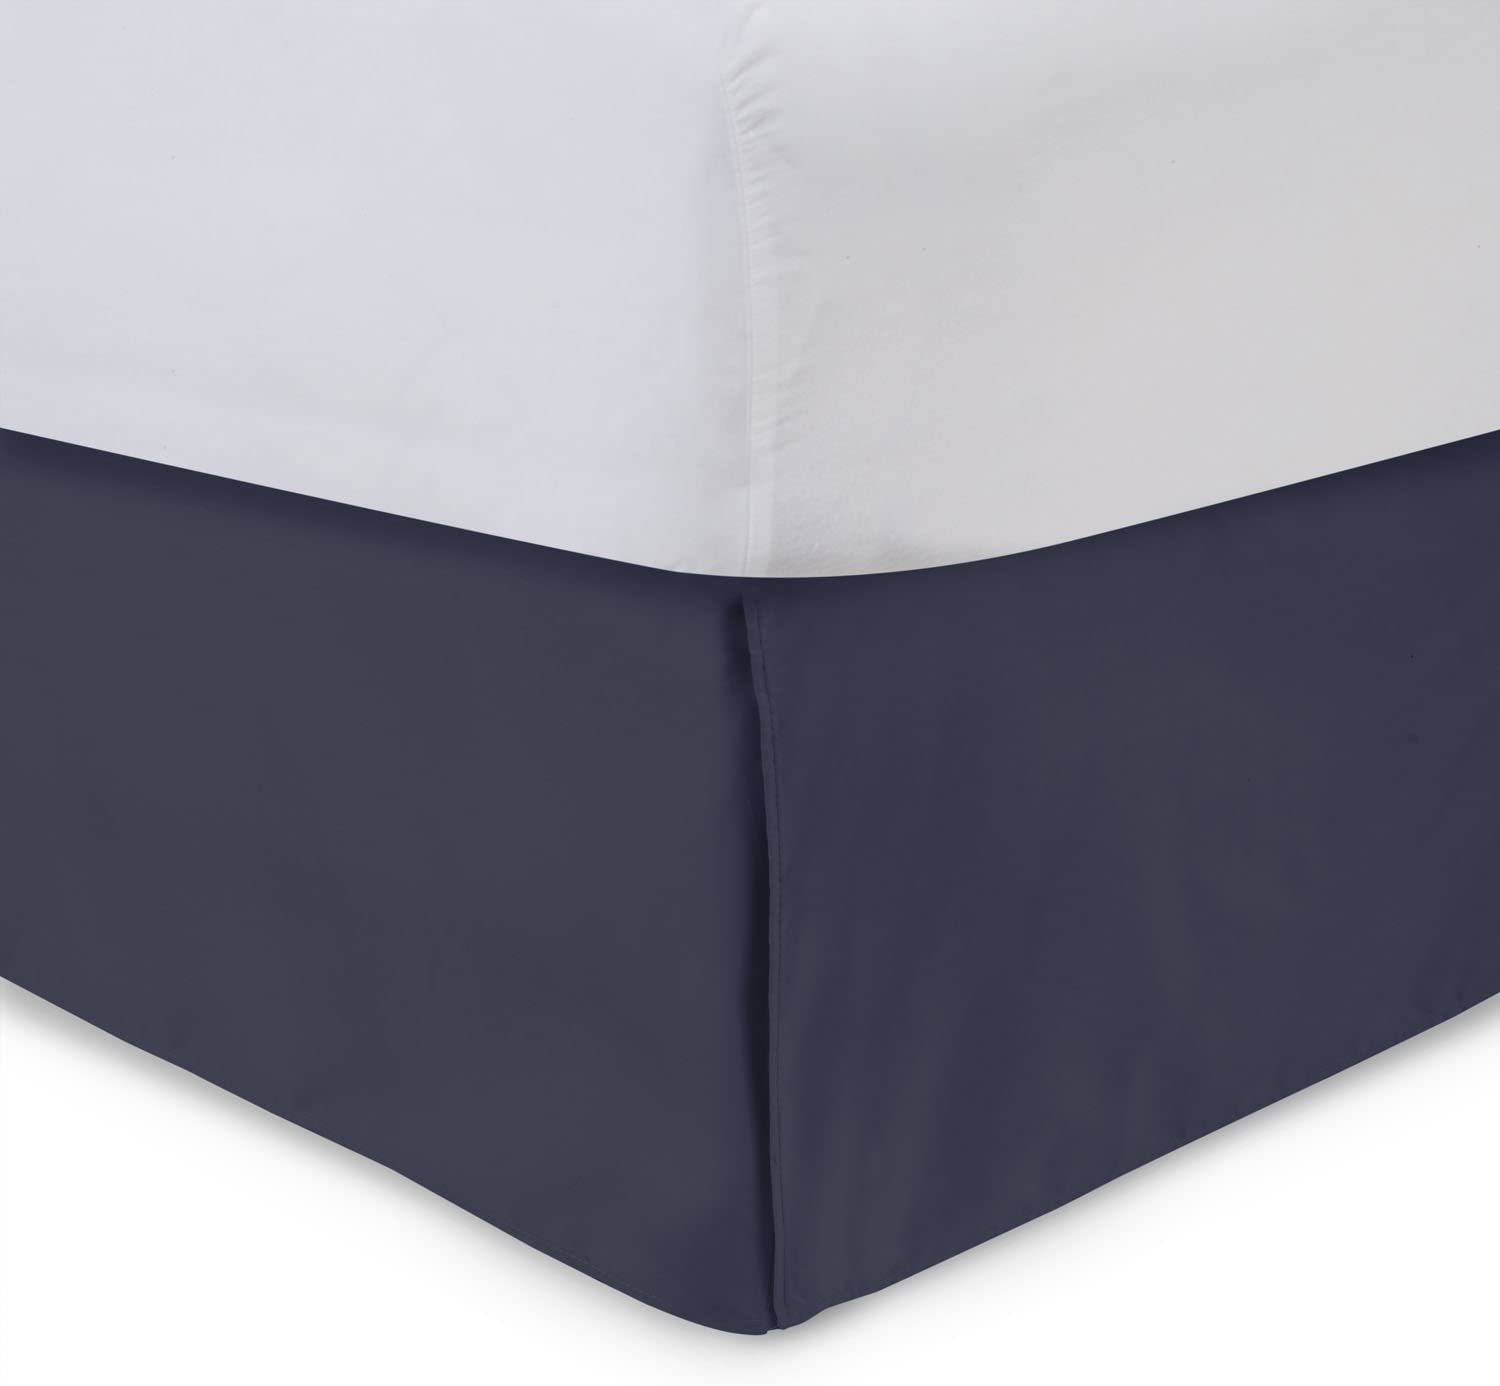 Tailored Bed Skirt - Twin XL, 14 inch Drop, Cotton Blend , Navy, Bedskirt with Split Corners(Available in and 16 Colors) Blissford